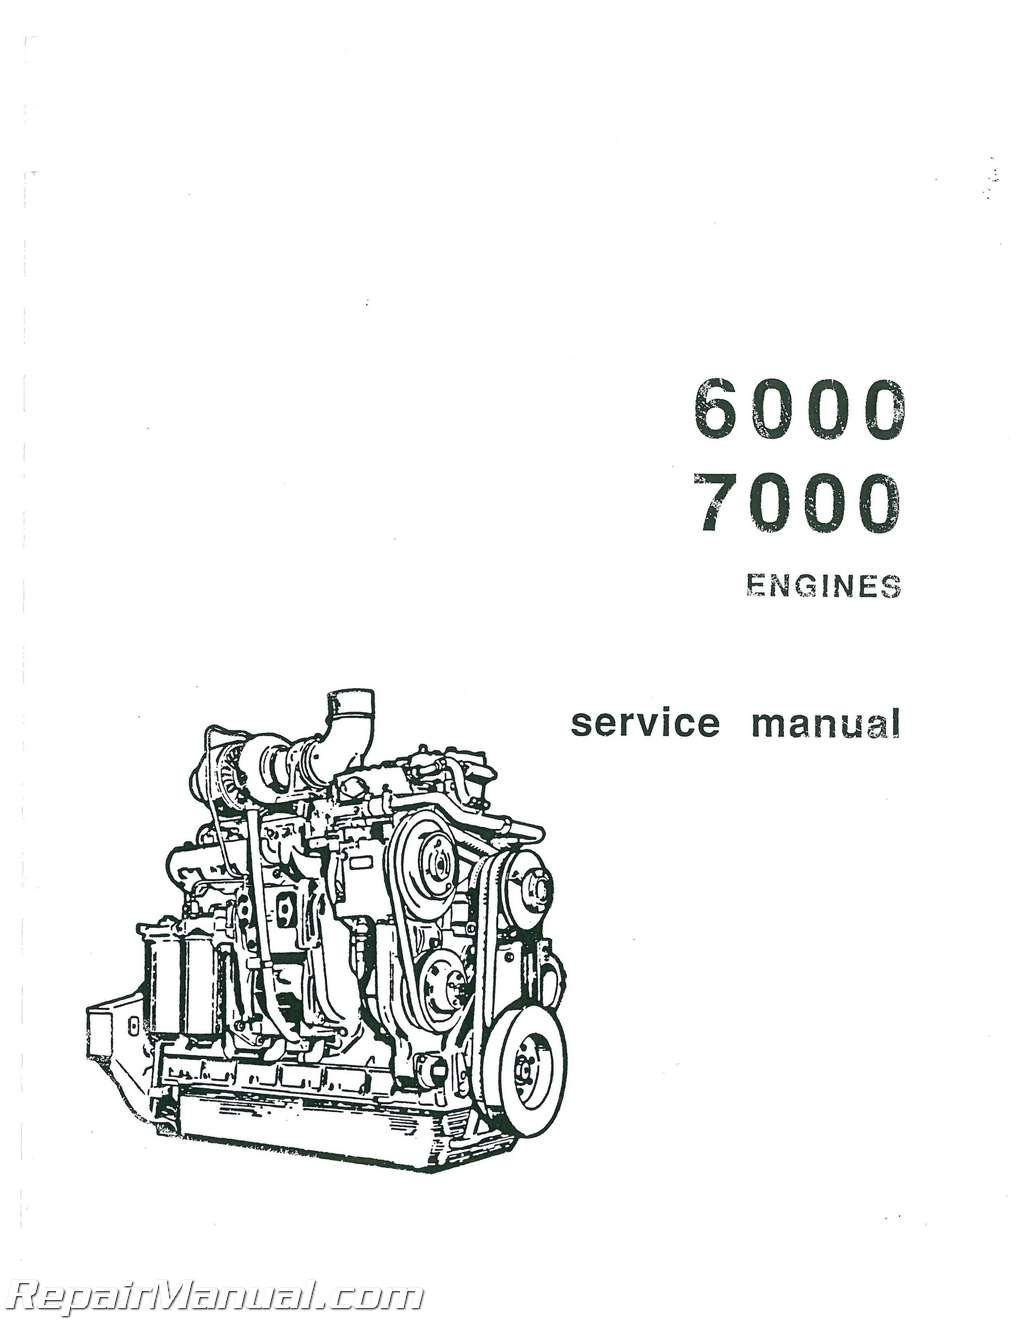 AC-S-HD7G Allis Chalmers HD-7G Diesel Crawler Loader Service Manual ePub fb2 ebook